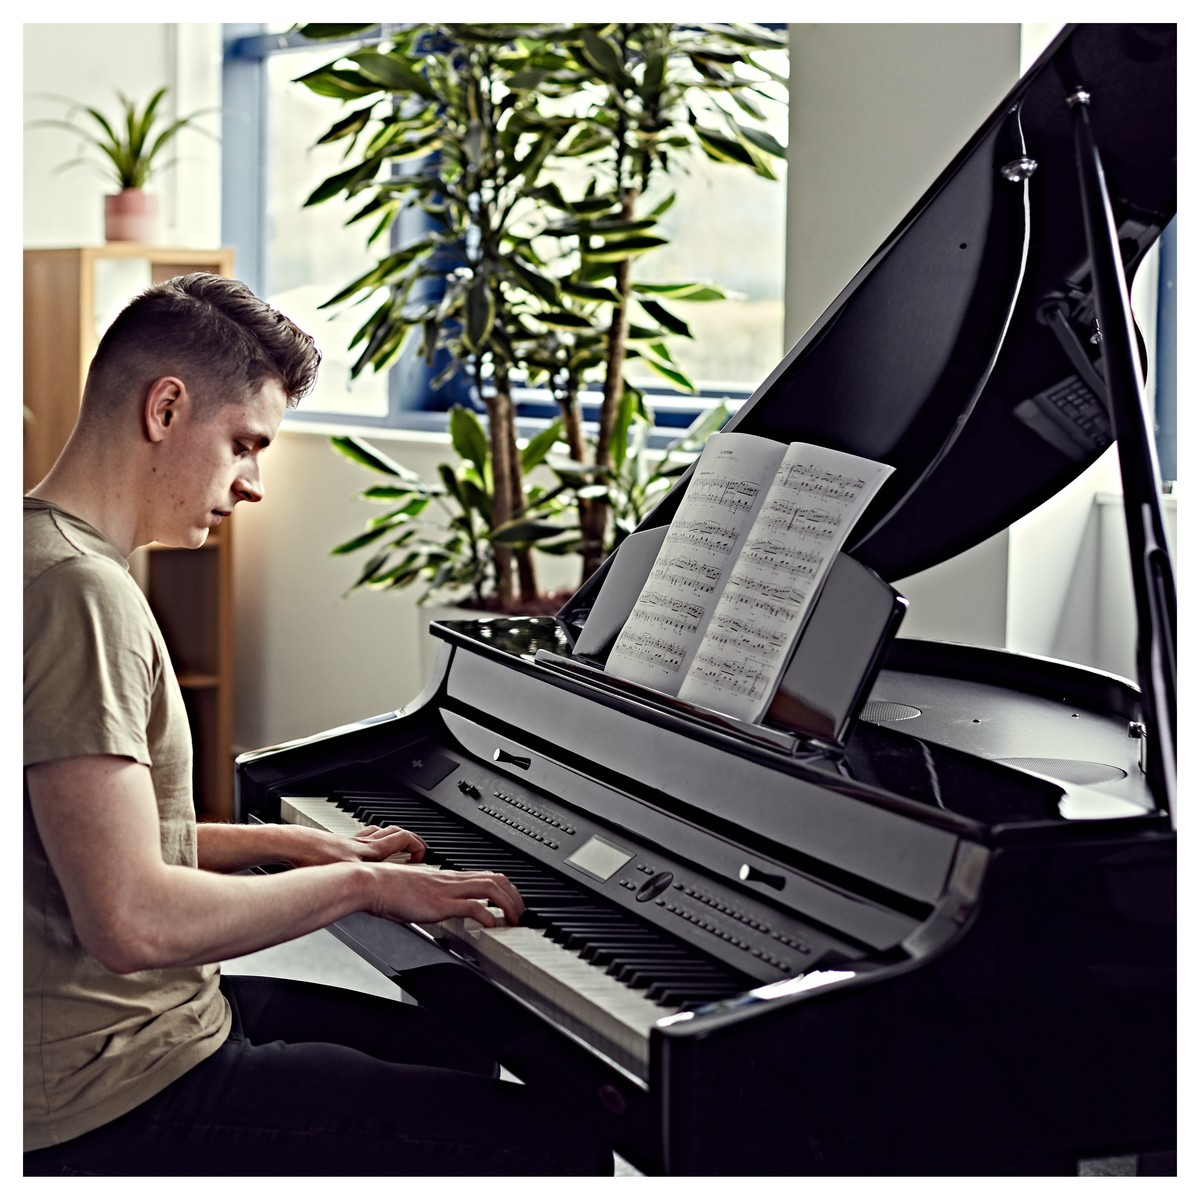 GDP-500 Digital Grand Piano by Gear4music